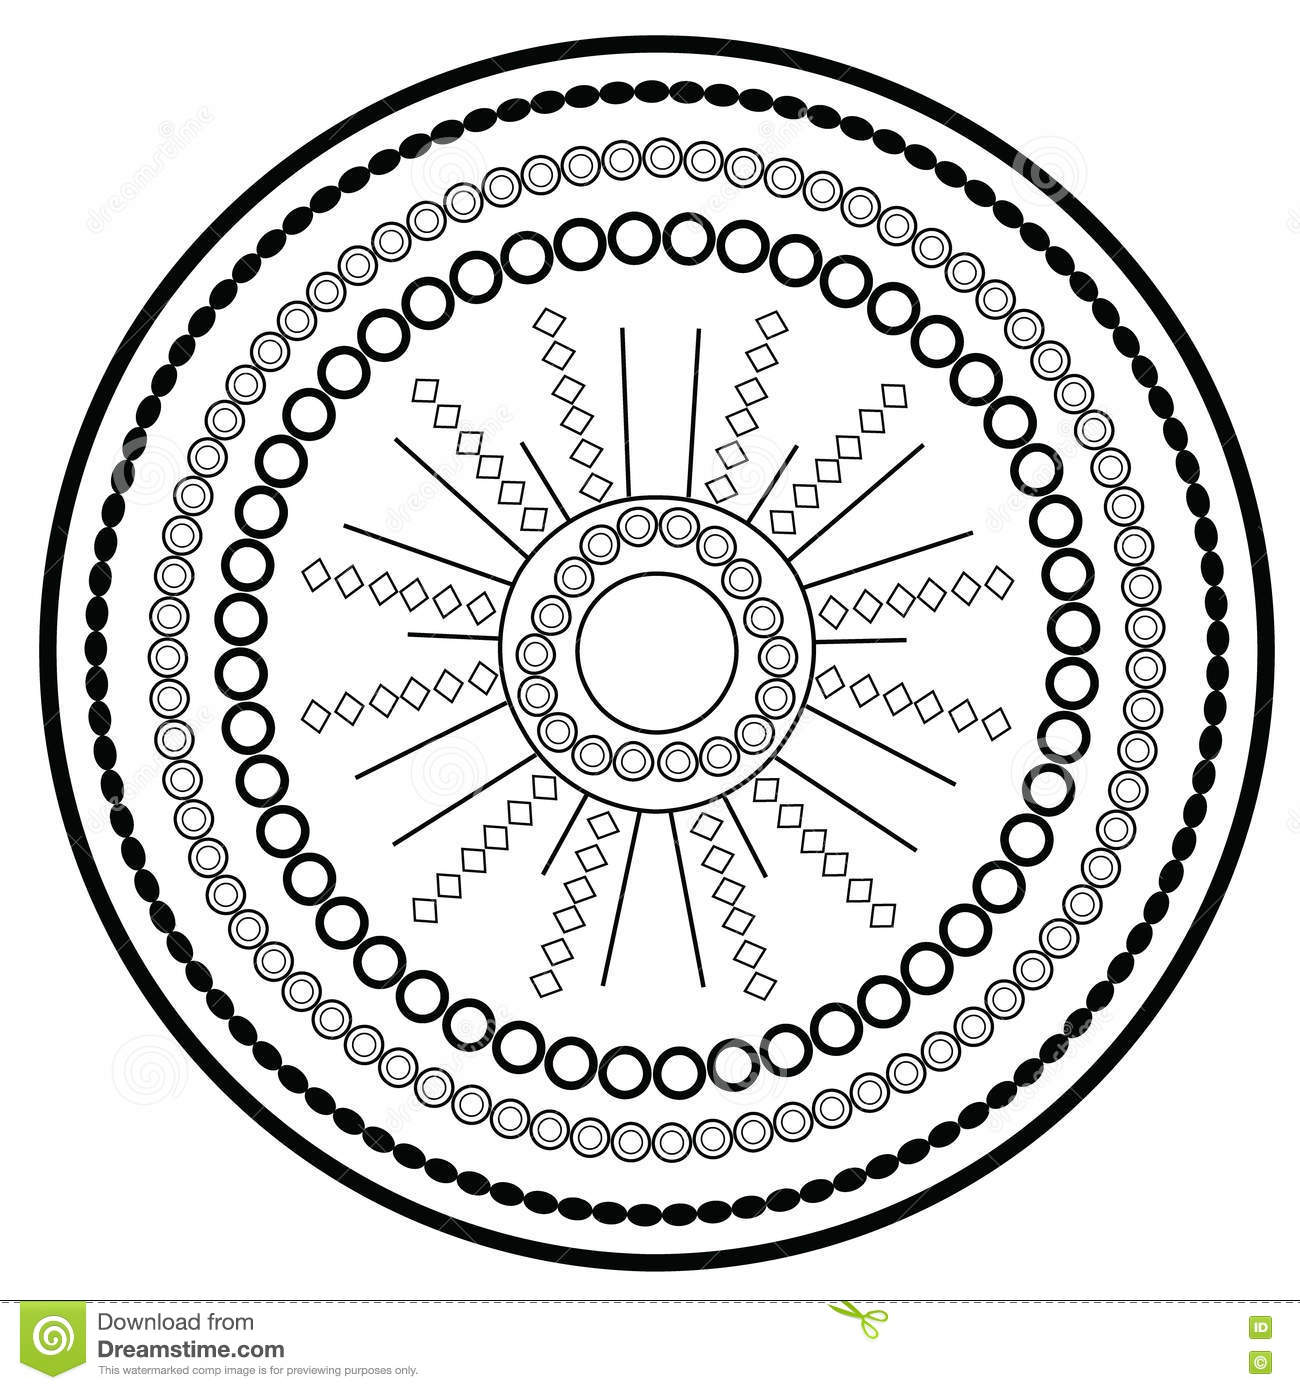 Relaxing Coloring Page With Mandala For Kids And Adults, Art Therapy ...